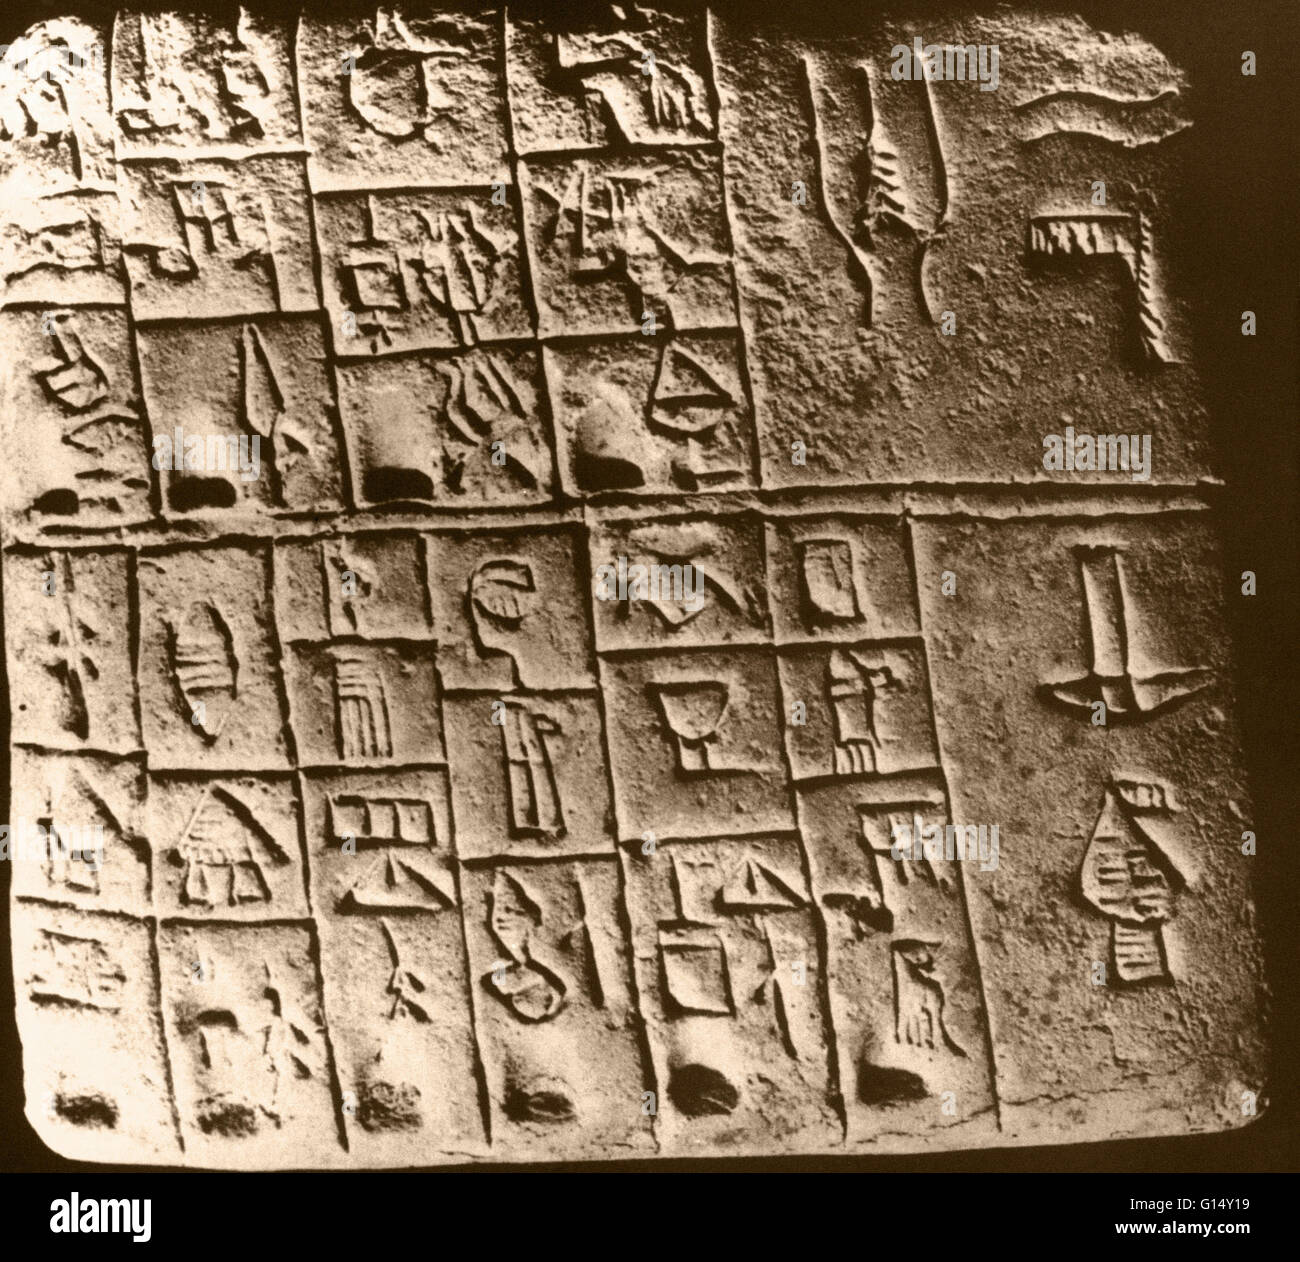 Sumerian Writing Cuneiform On A Clay Tablet From Mesopotamia